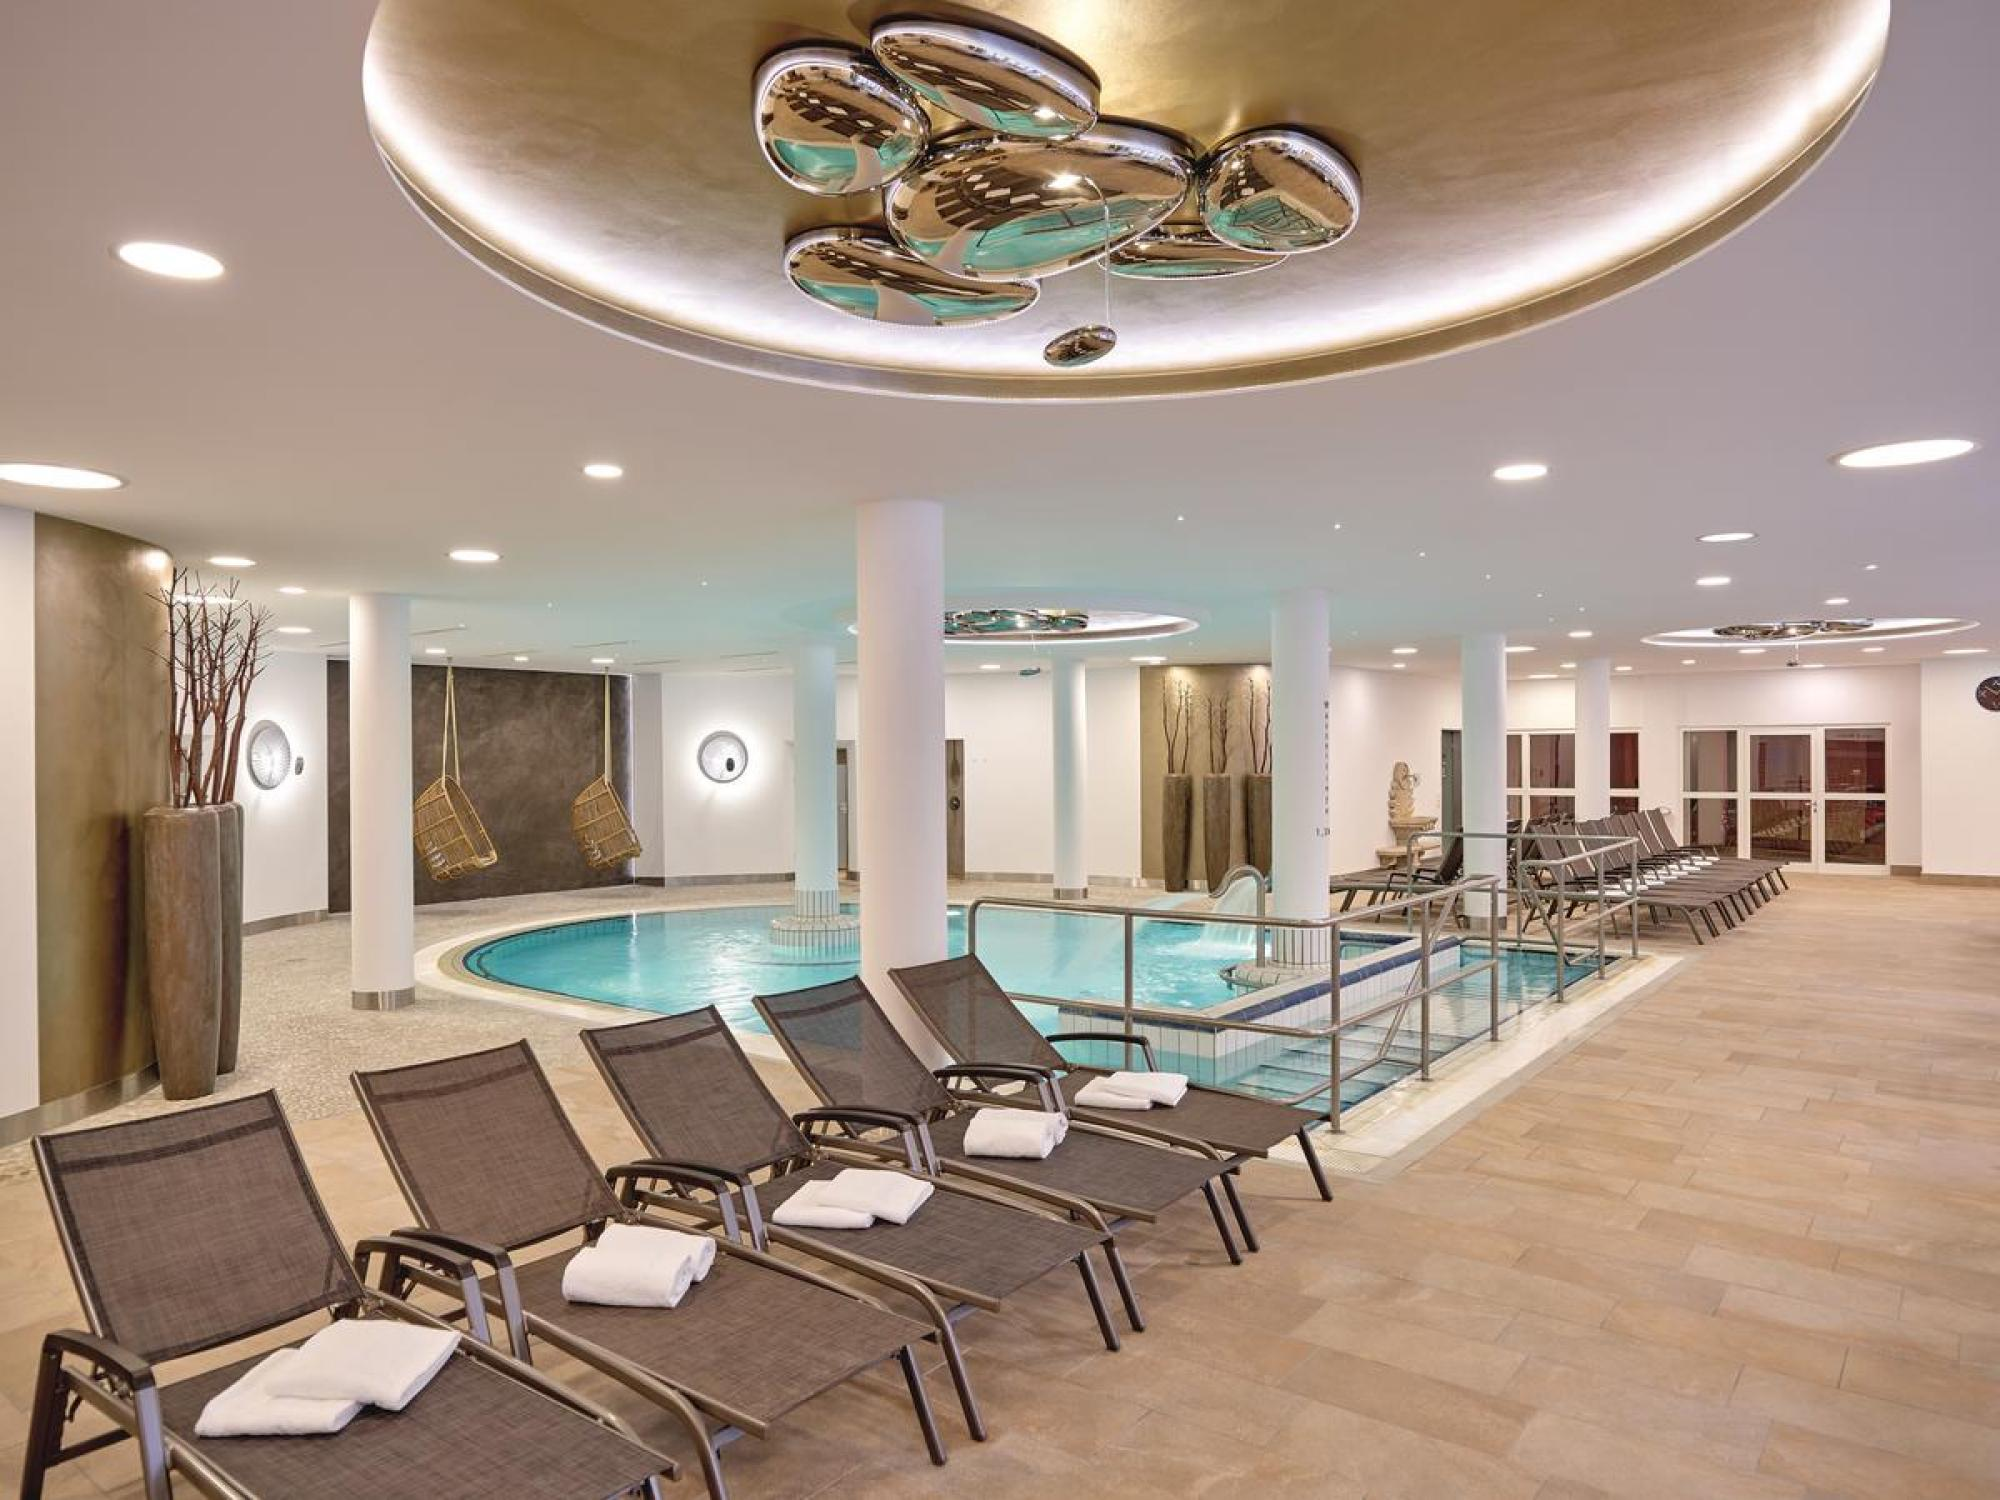 View Hotel Maximilian's picturesque indoor pool within amazing Germany.